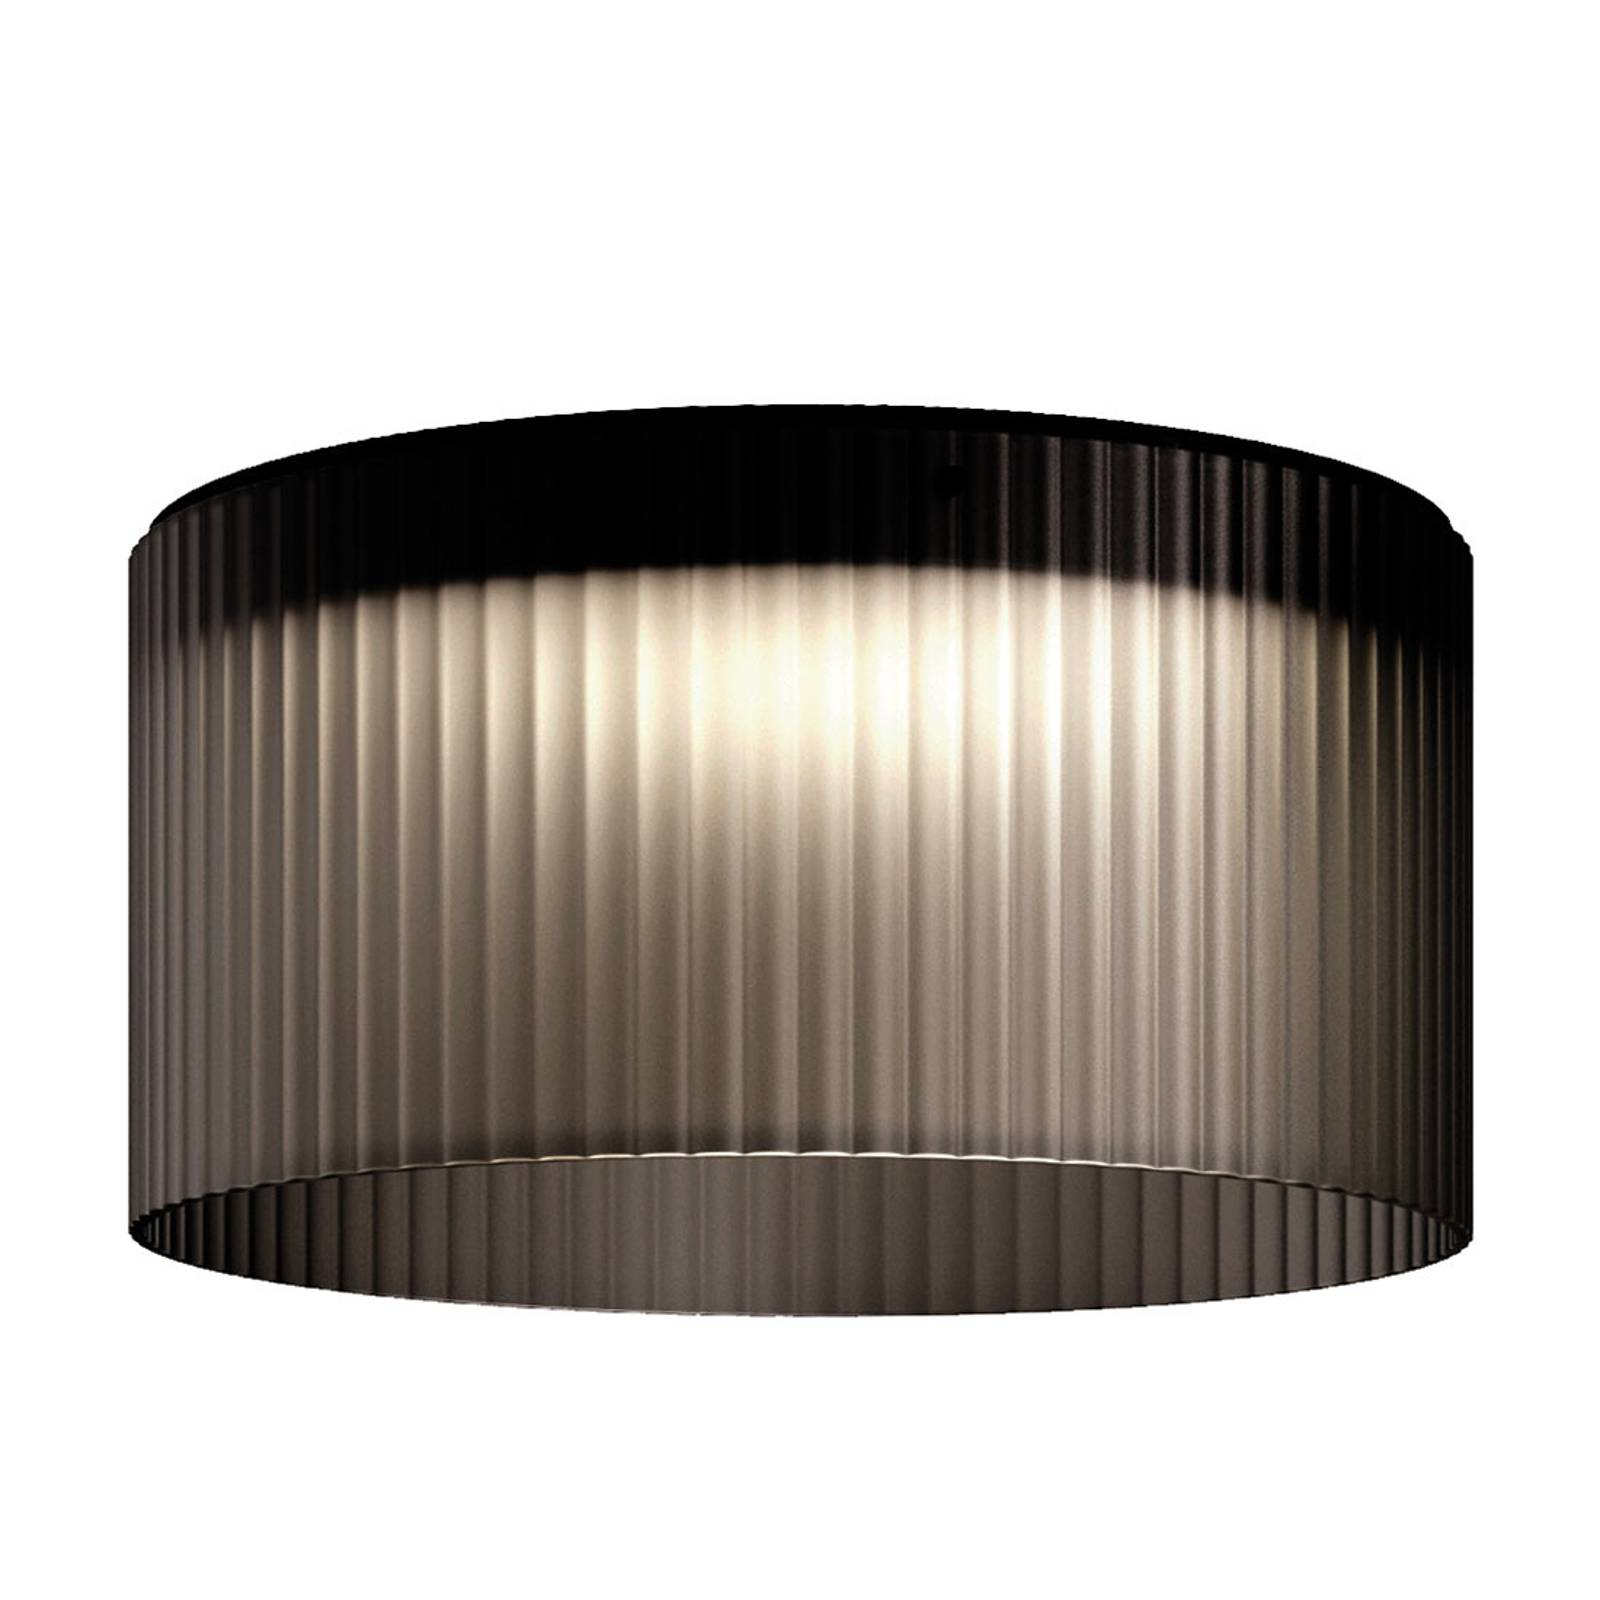 Kundalini Giass - LED ceiling light Ø 50 cm, grey from Kundalini